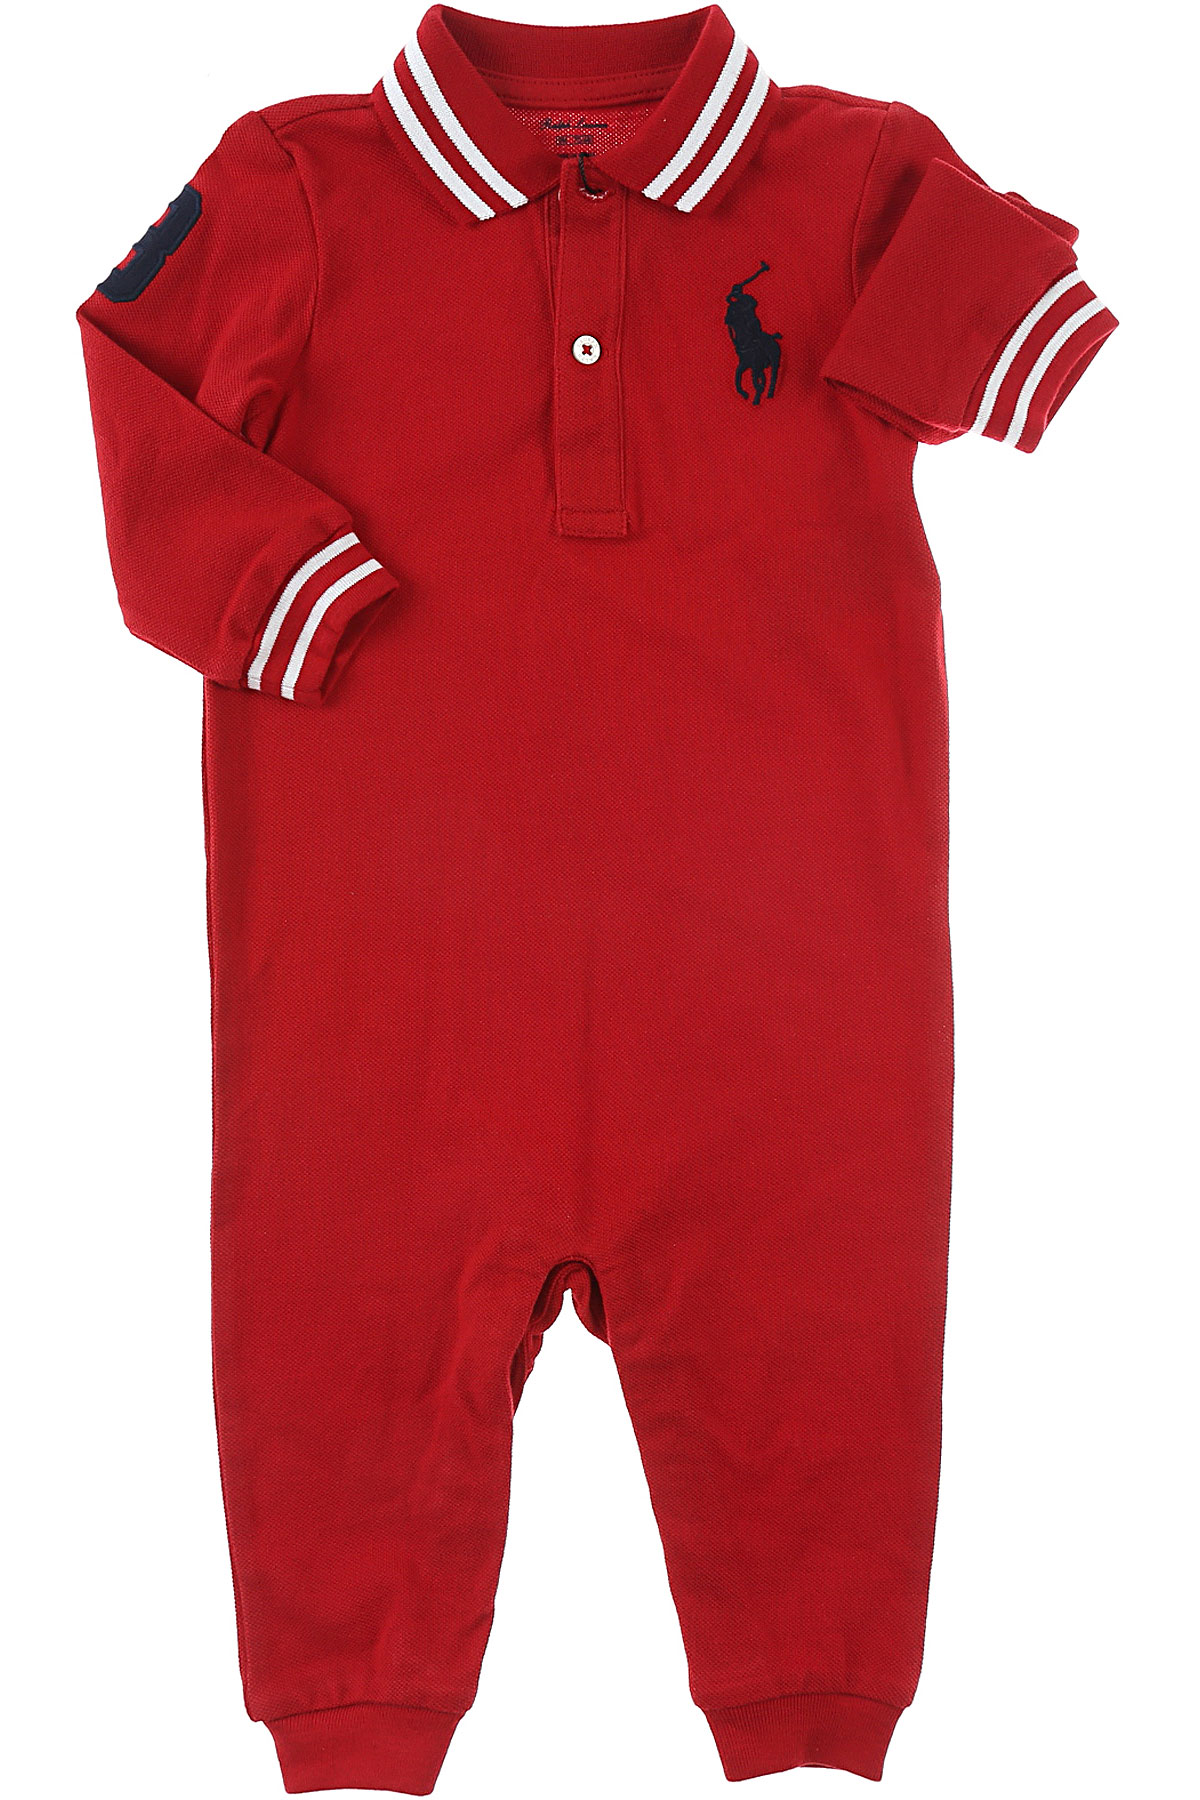 Image of Ralph Lauren Baby Bodysuits & Onesies for Boys, Red, Cotton, 2017, 3M 9M